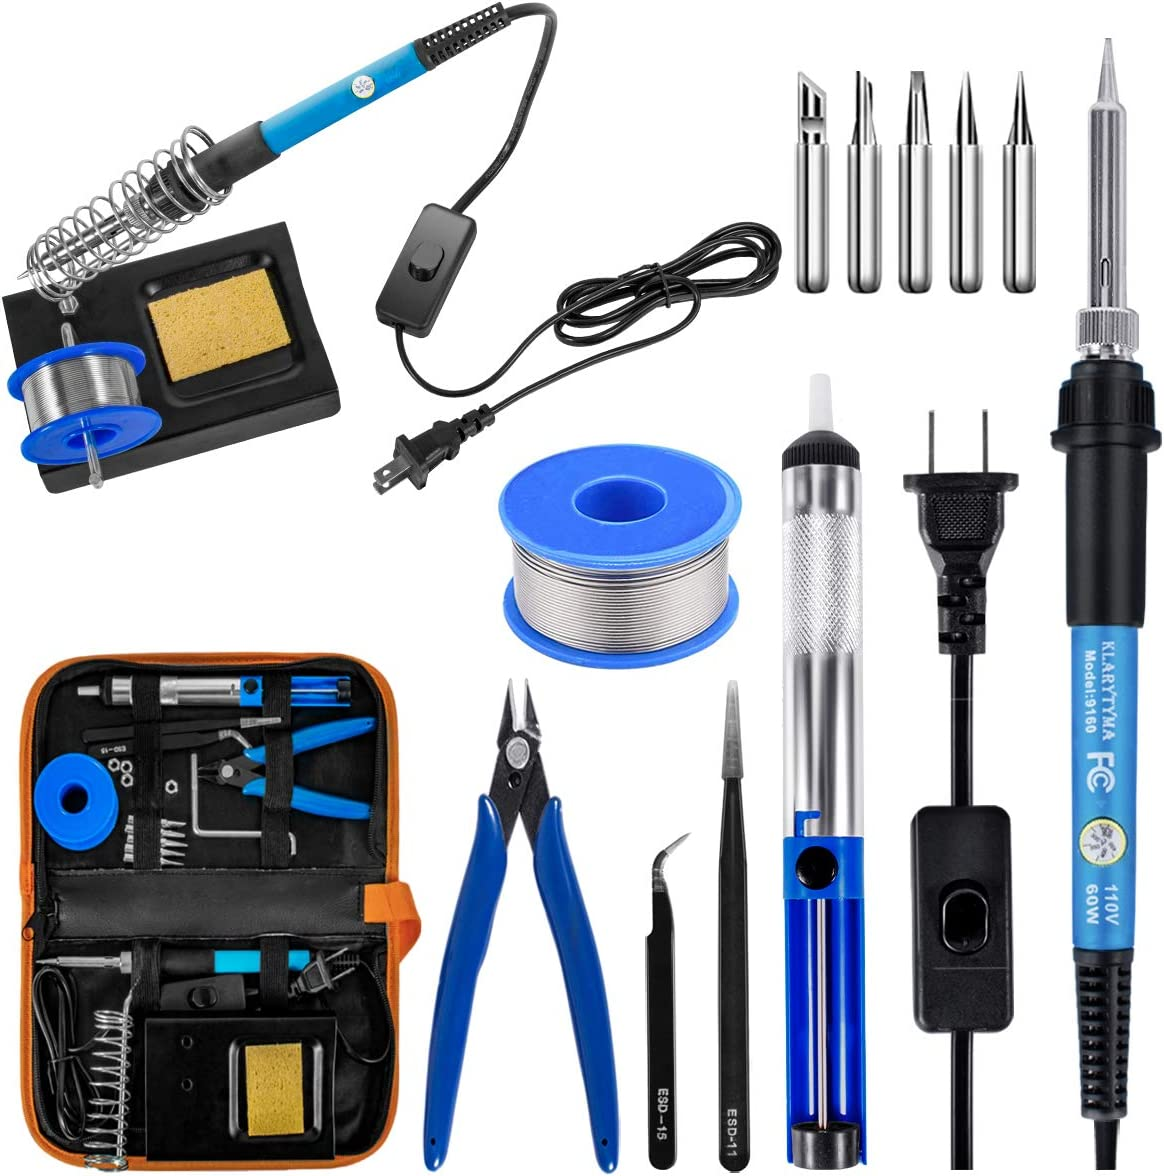 New PC PCB 60W 220V Soldering Welding Iron Tool Heat Pencil Electronic CA BR